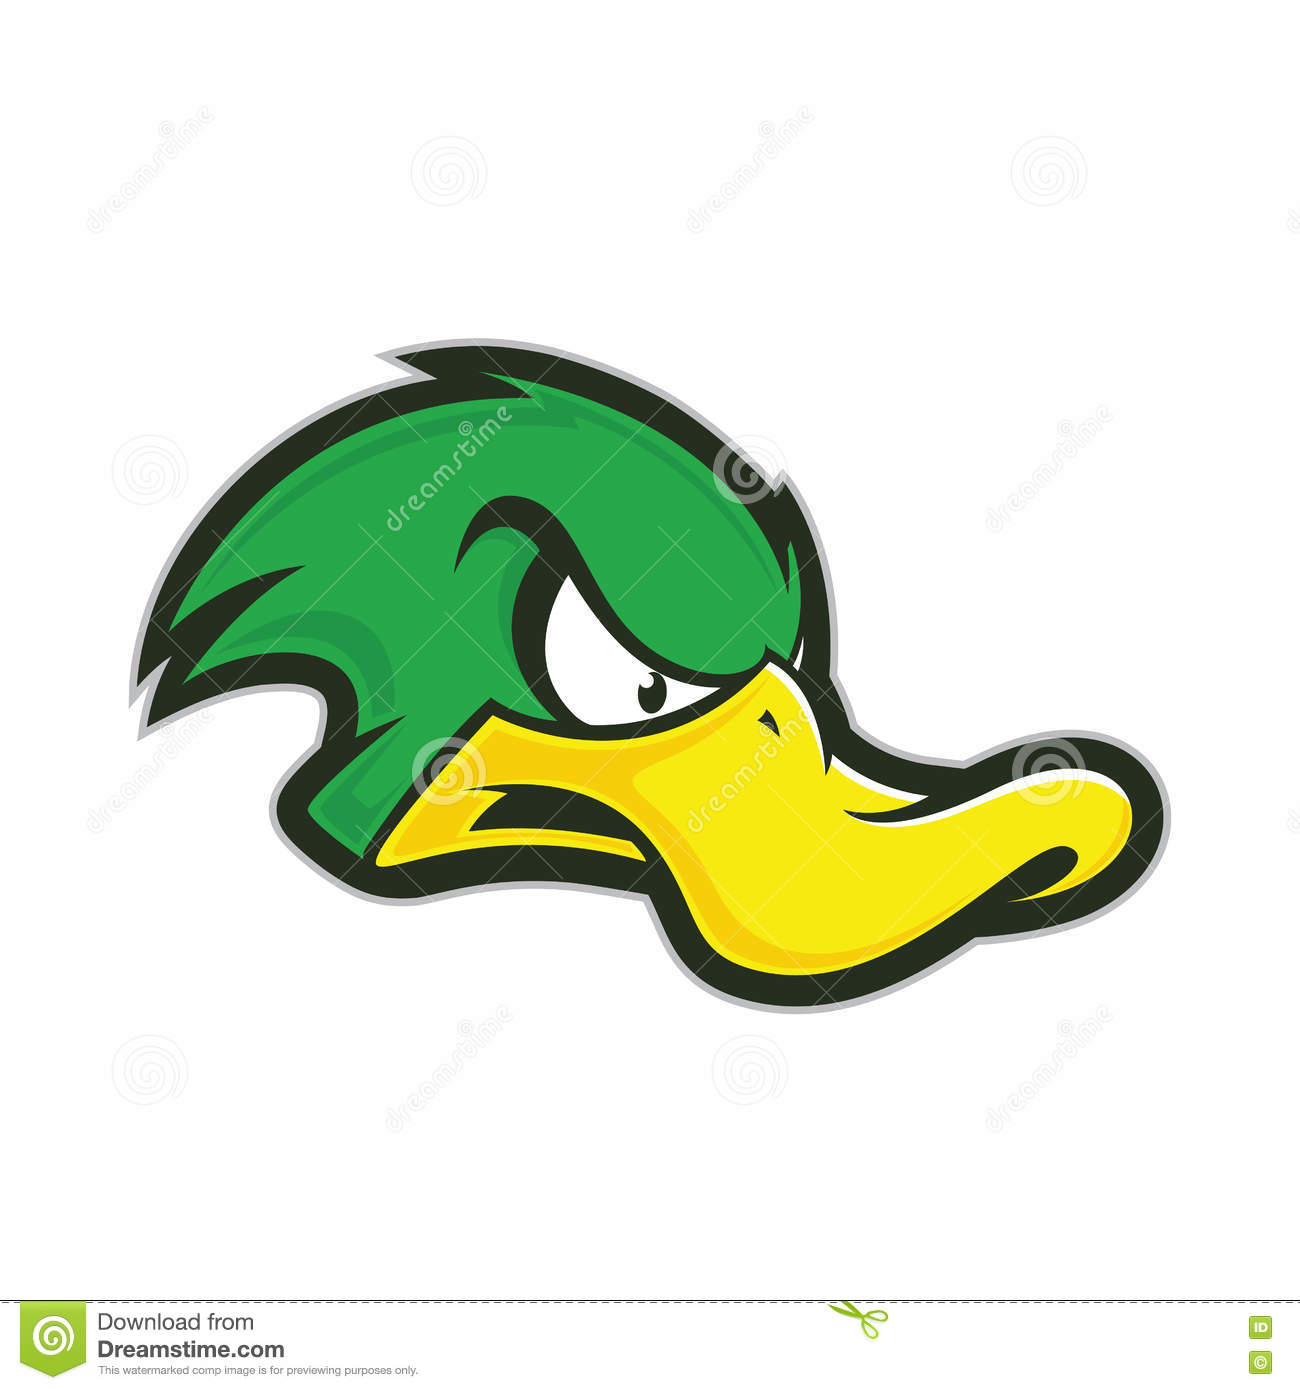 Angry duck mascot stock vector. Illustration of college.